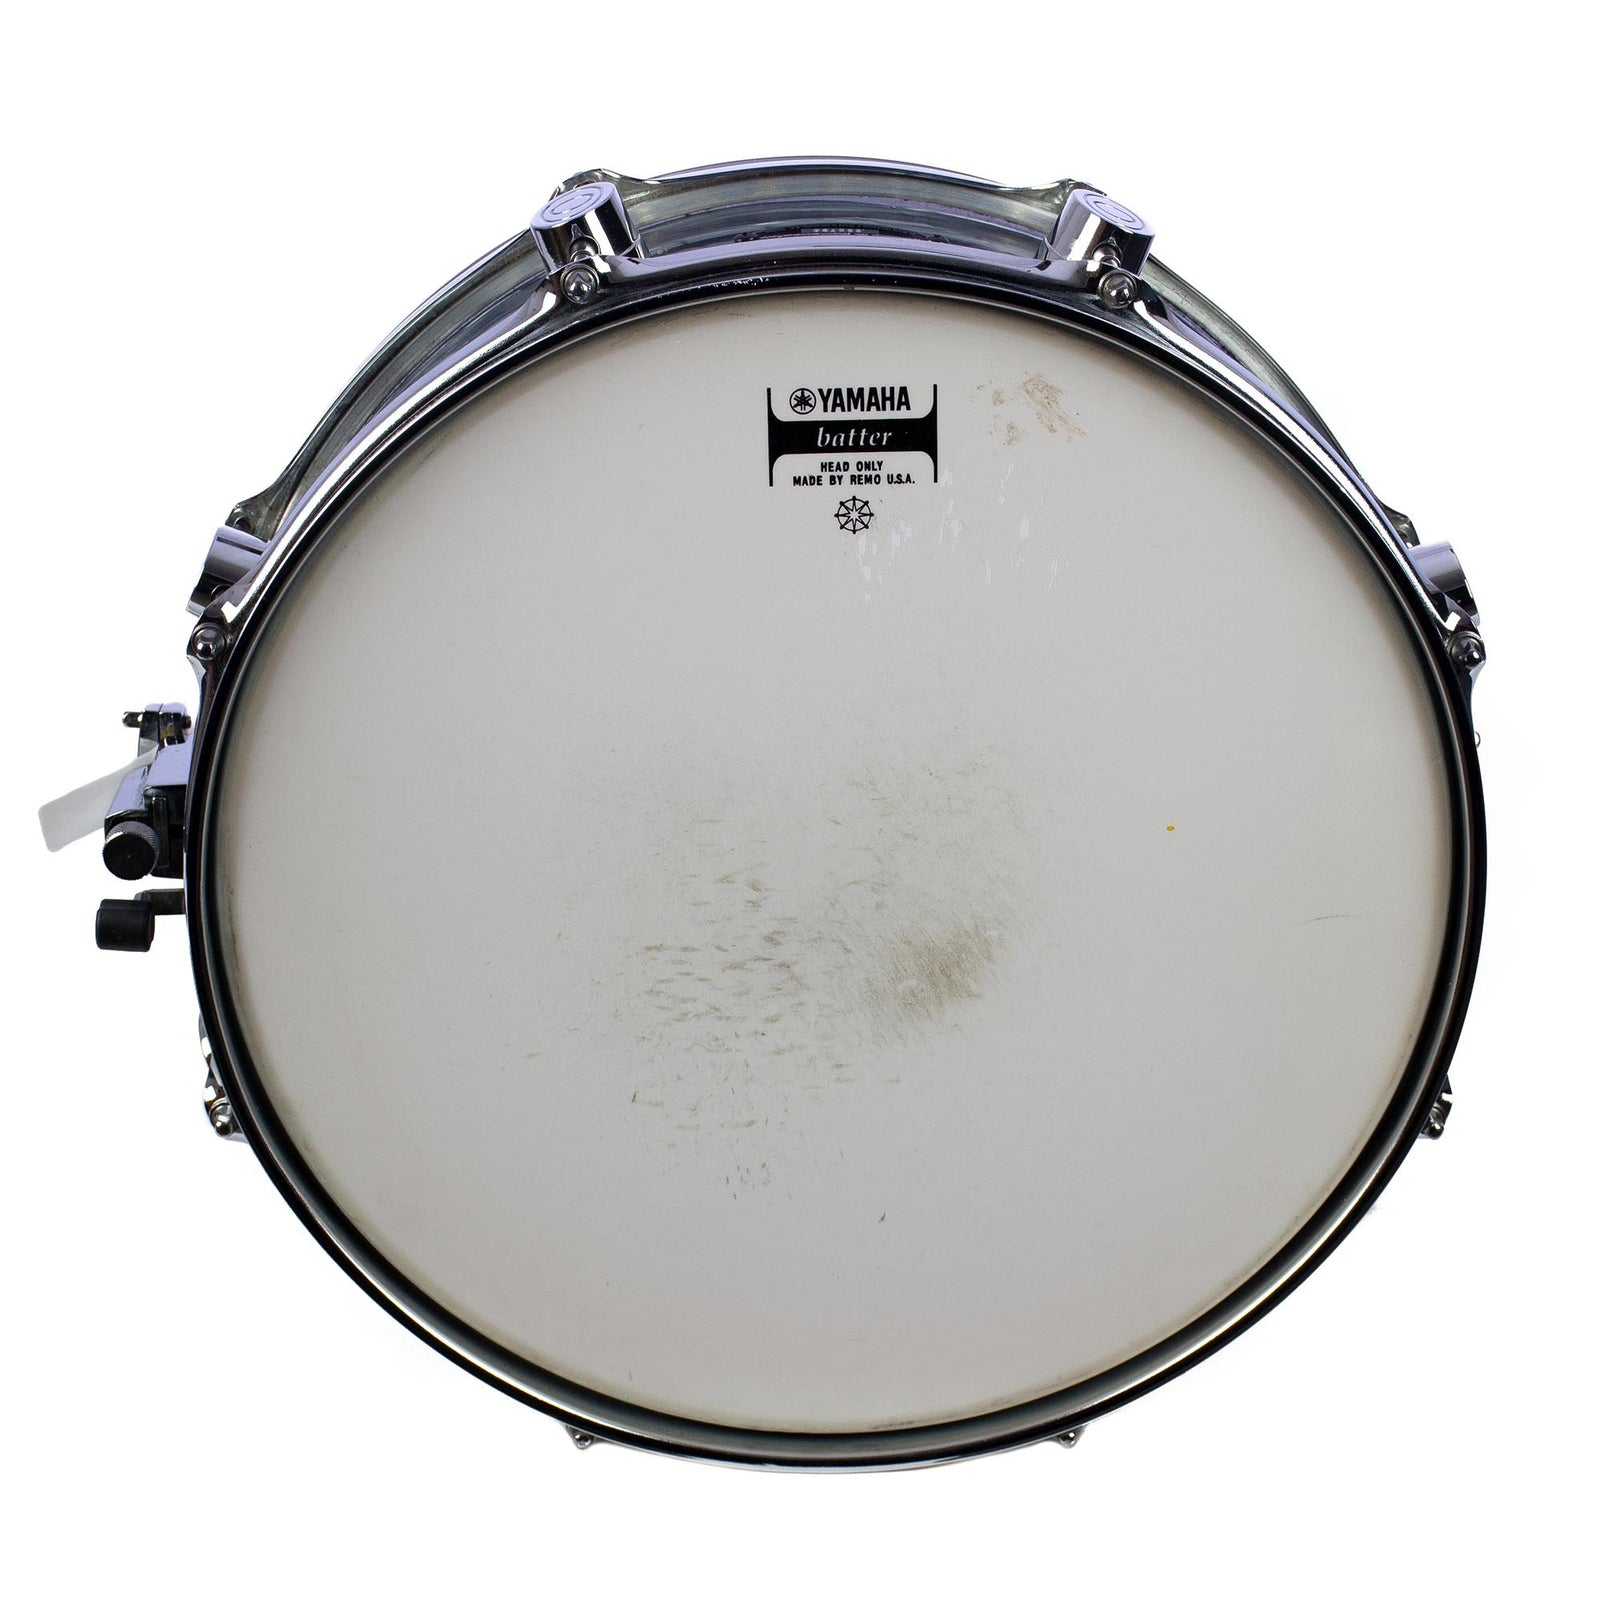 Pacific 14x5 CX Maple Snare - Oyster Pearl - Used